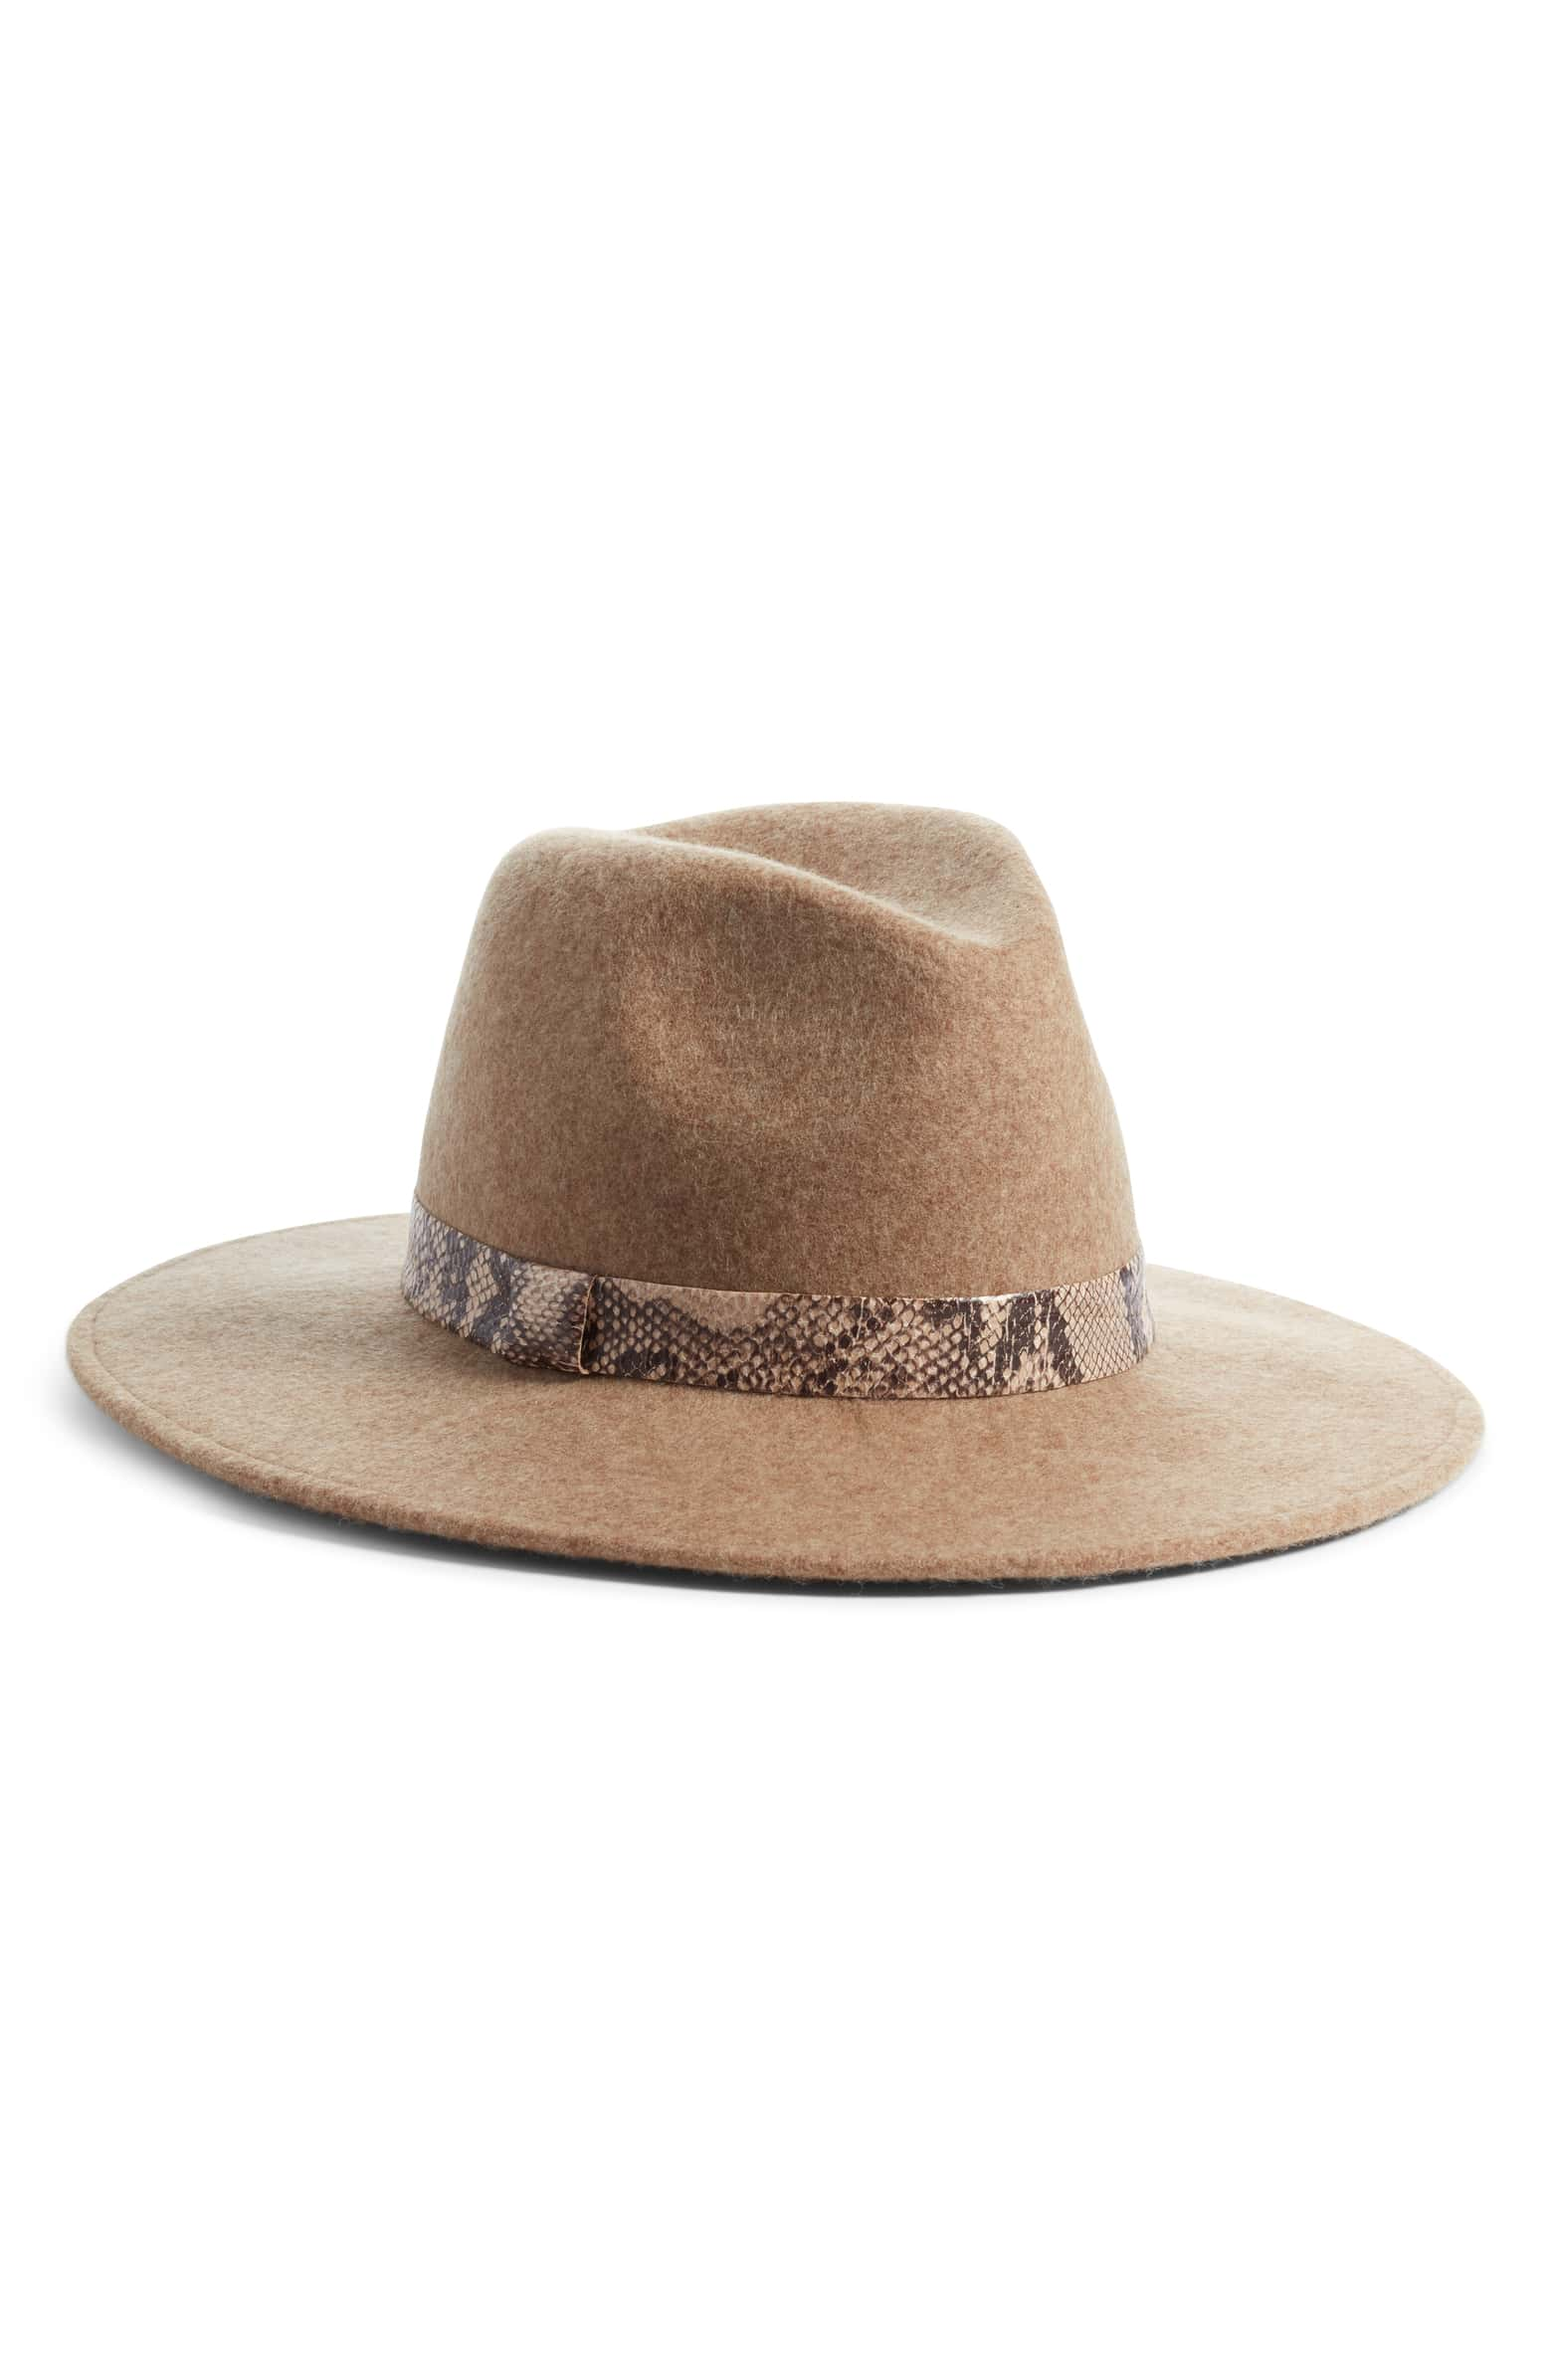 Wool Hat - SALE: $38.90